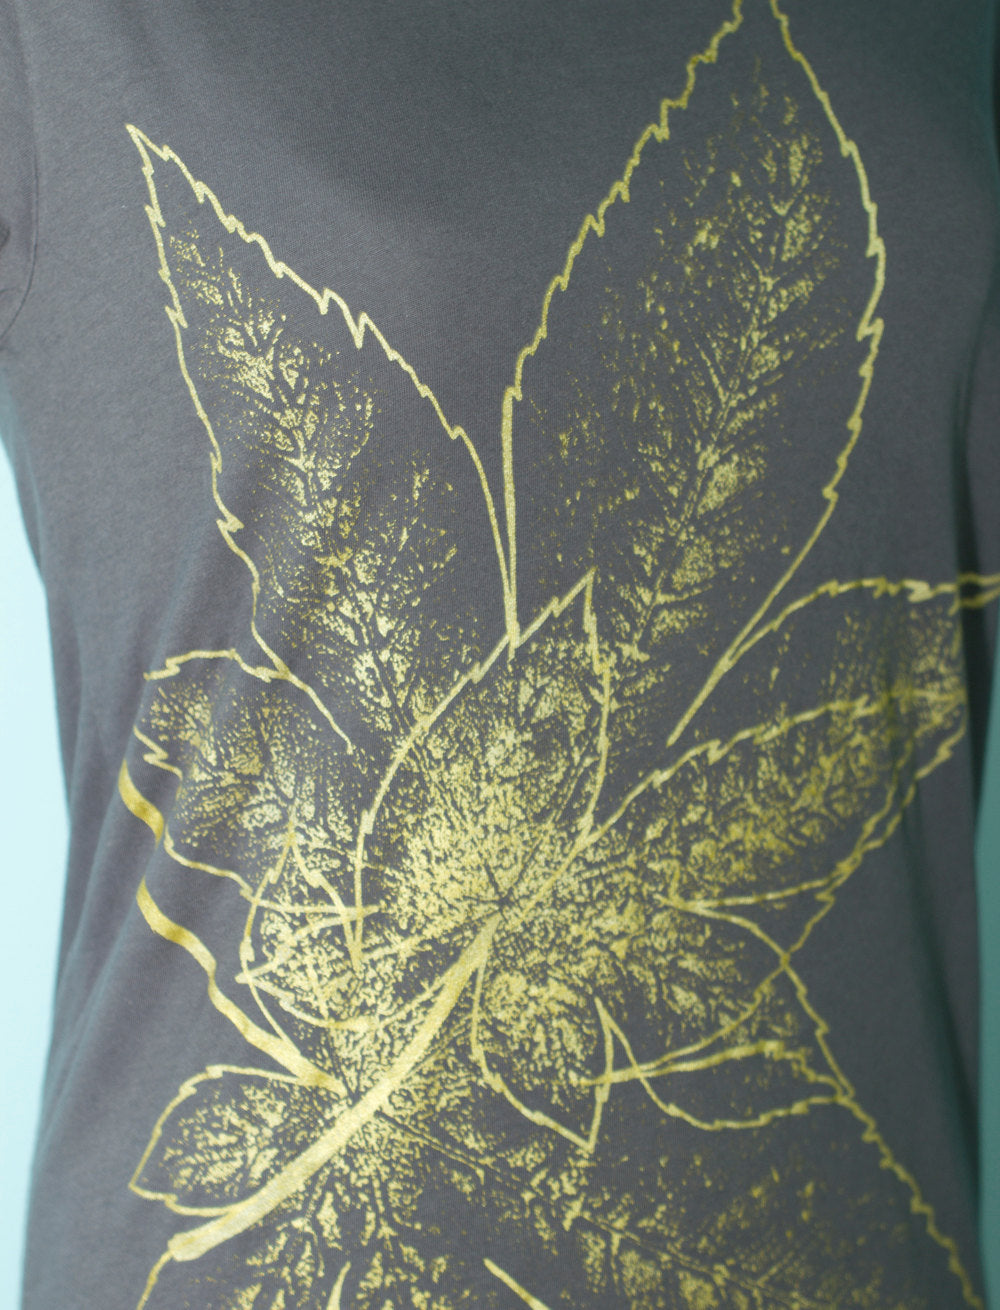 Asphalt Grey Japanese Maple Leaves Women's T-Shirt Second Close-Up - Yay for Fidget Art!